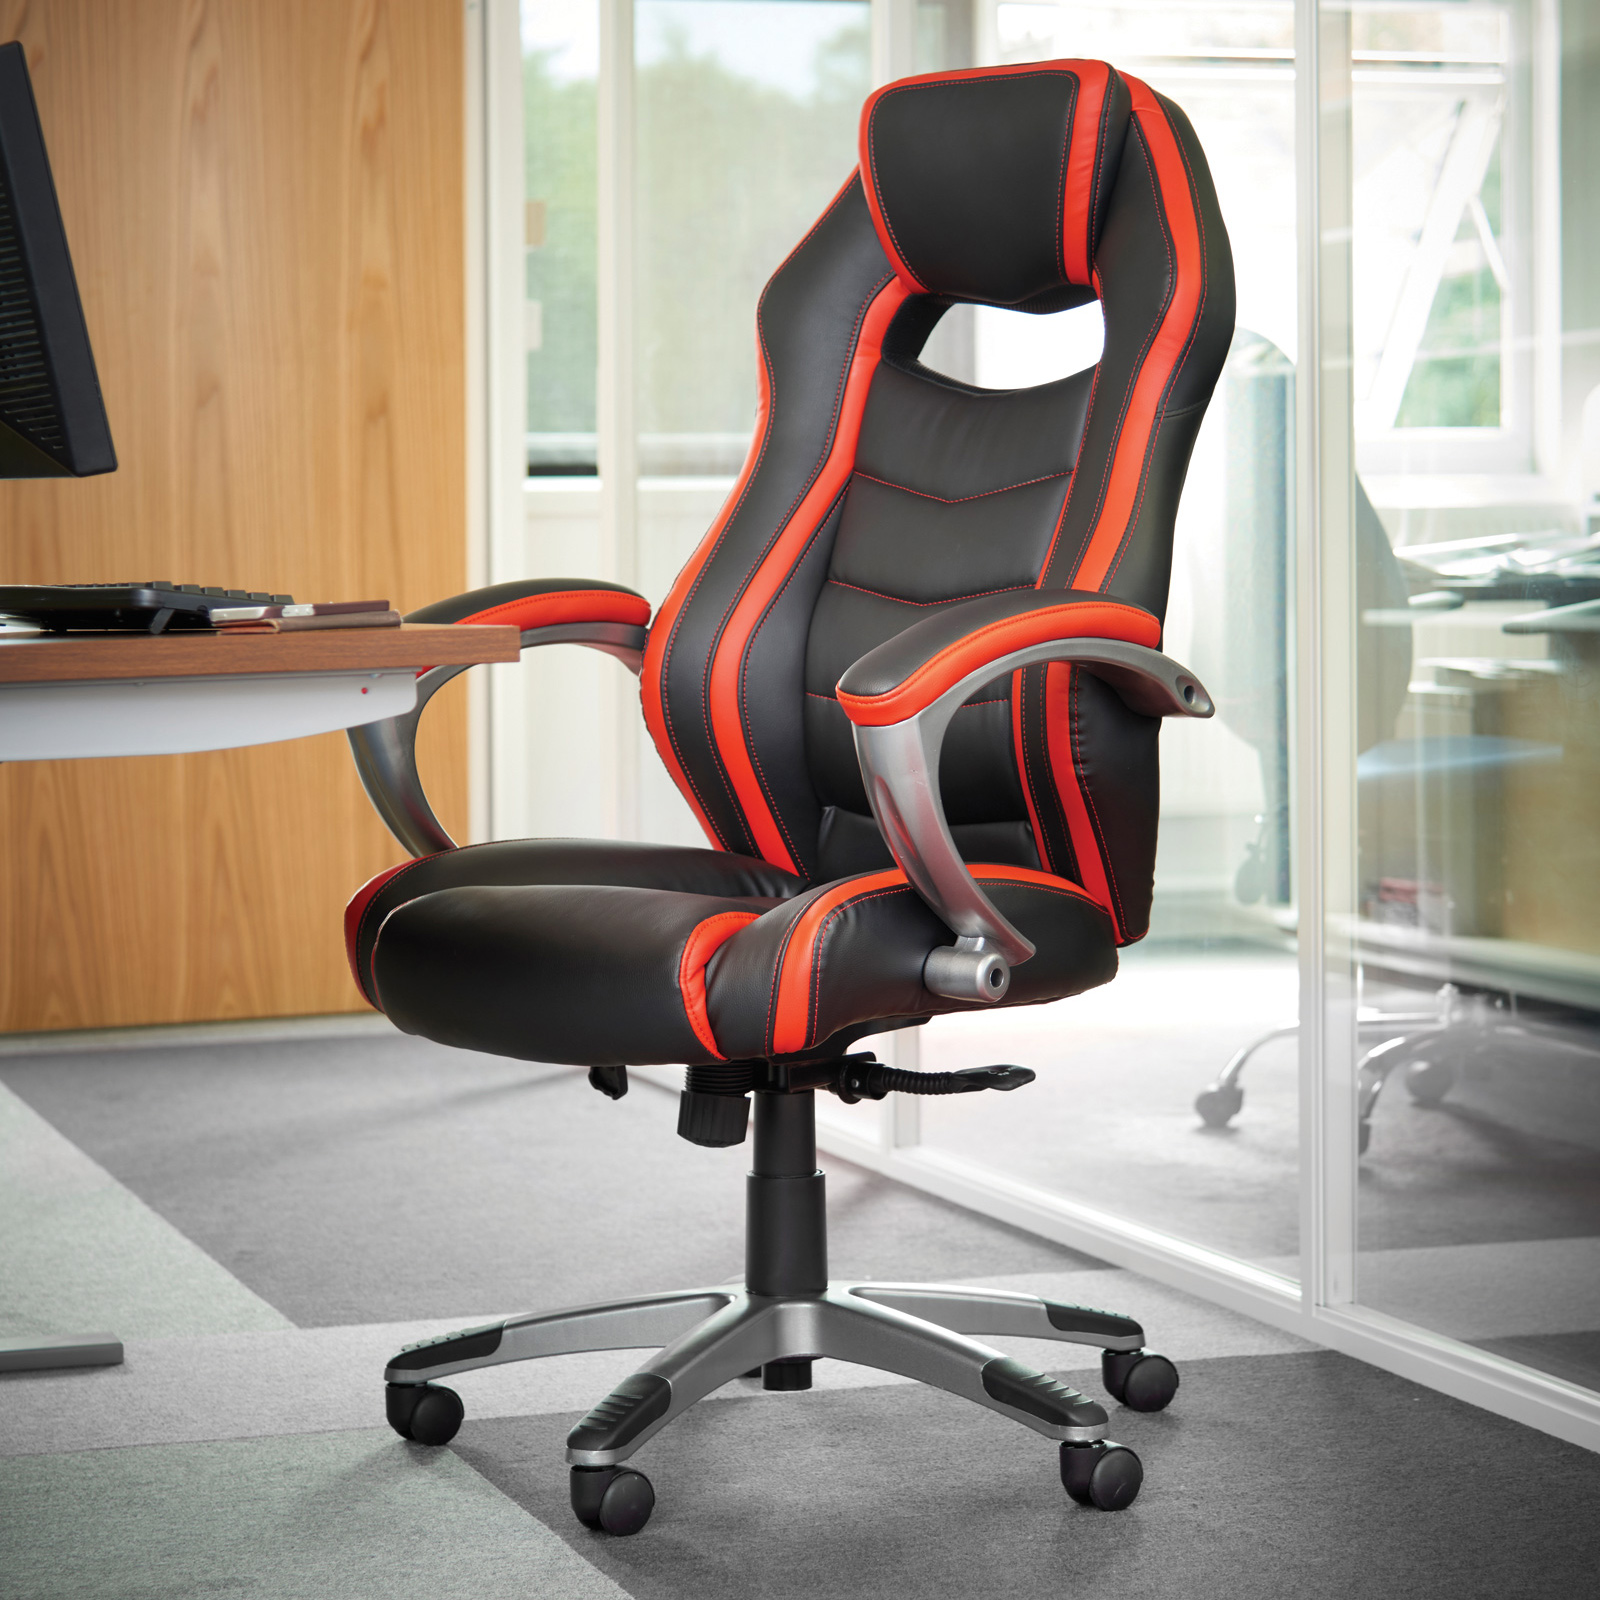 Home Working Seating